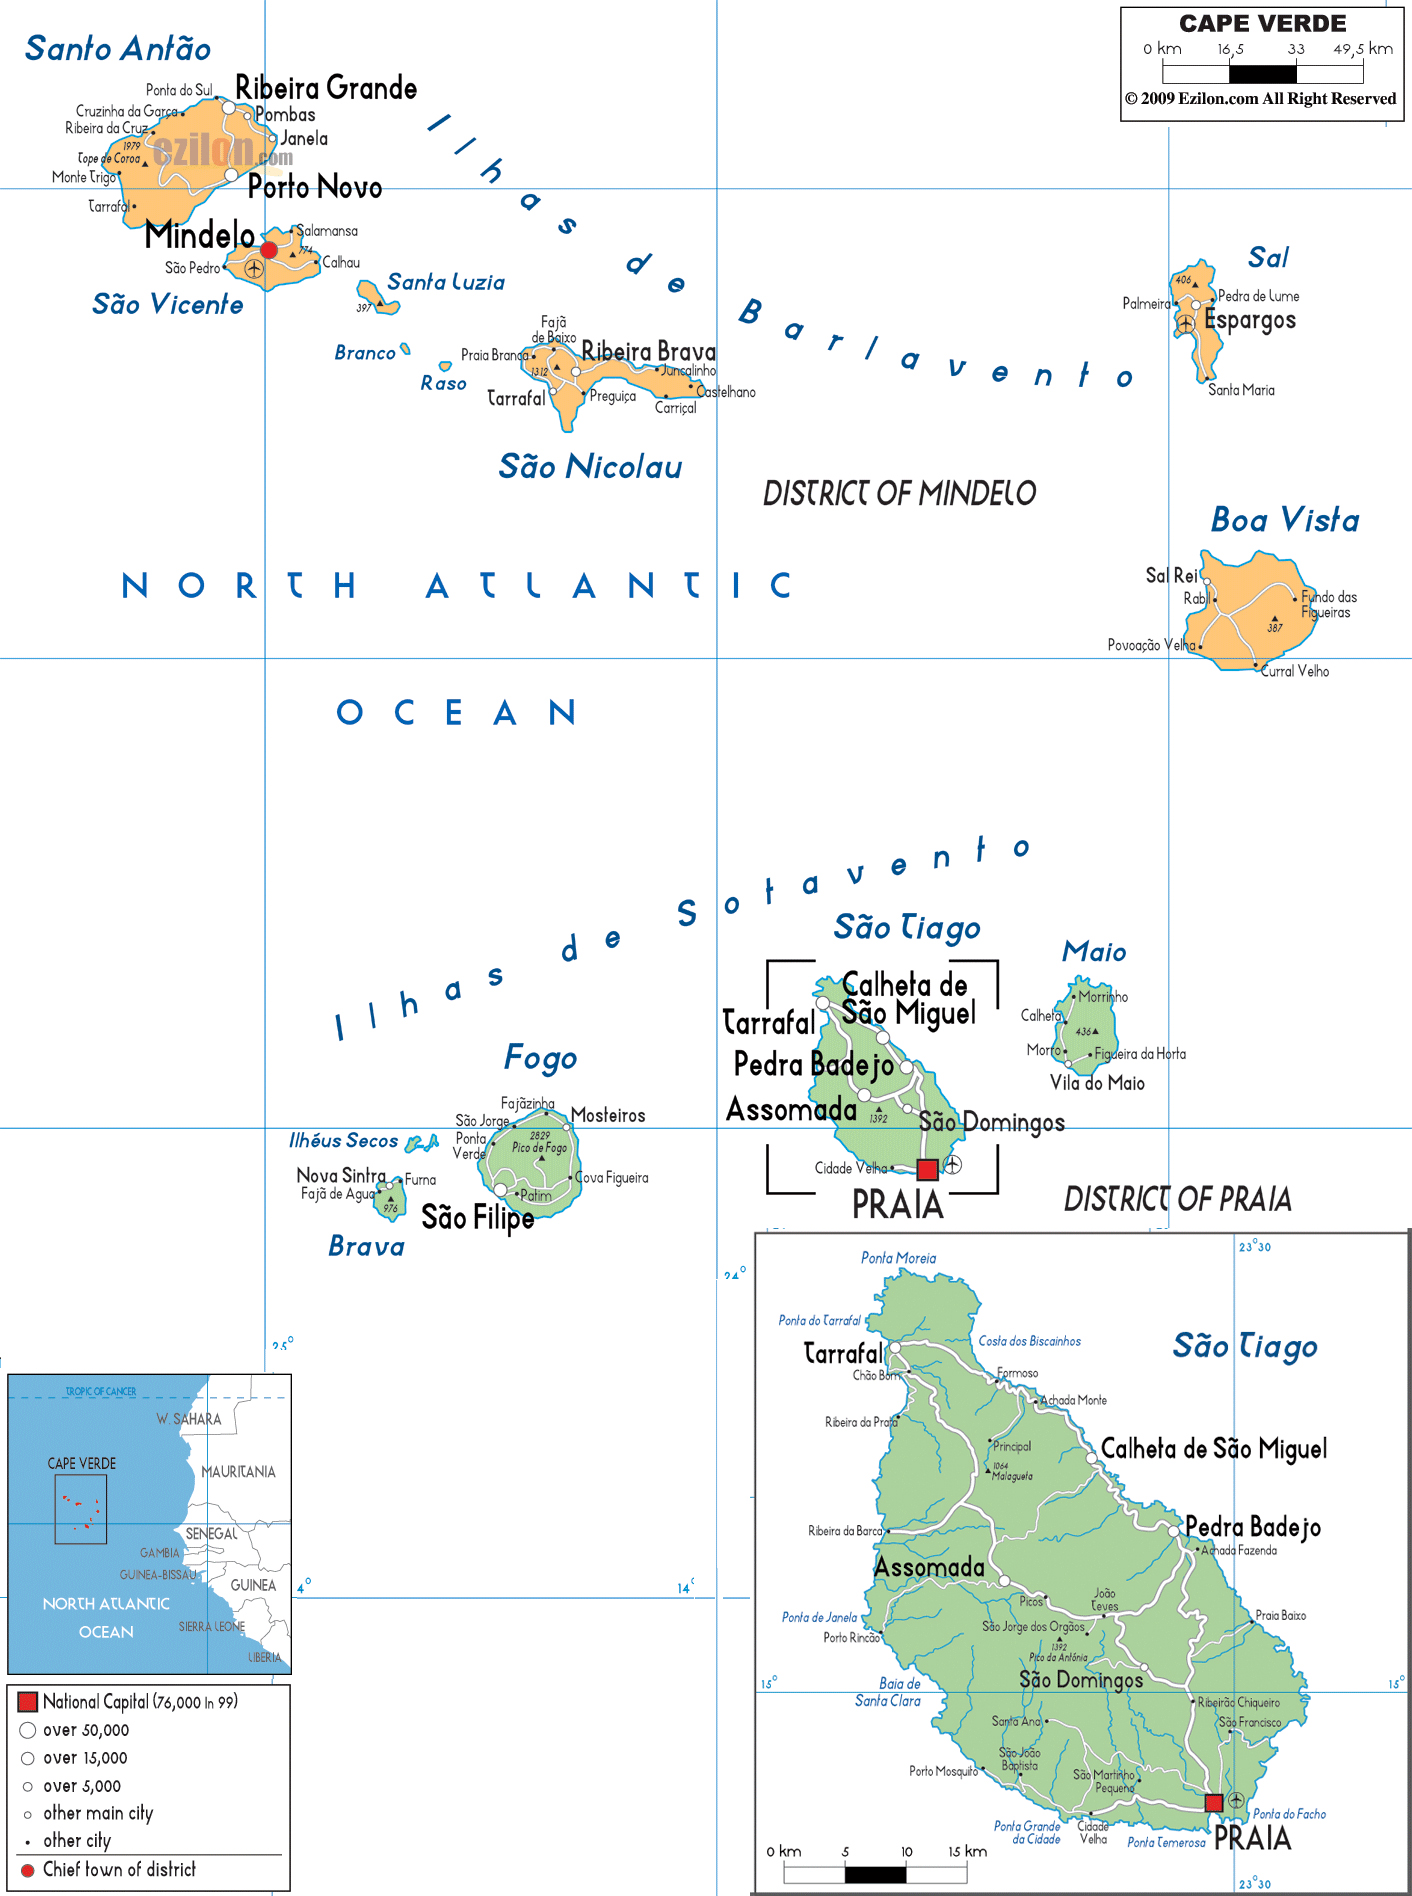 Large political and administrative map of Cape Verde with roads